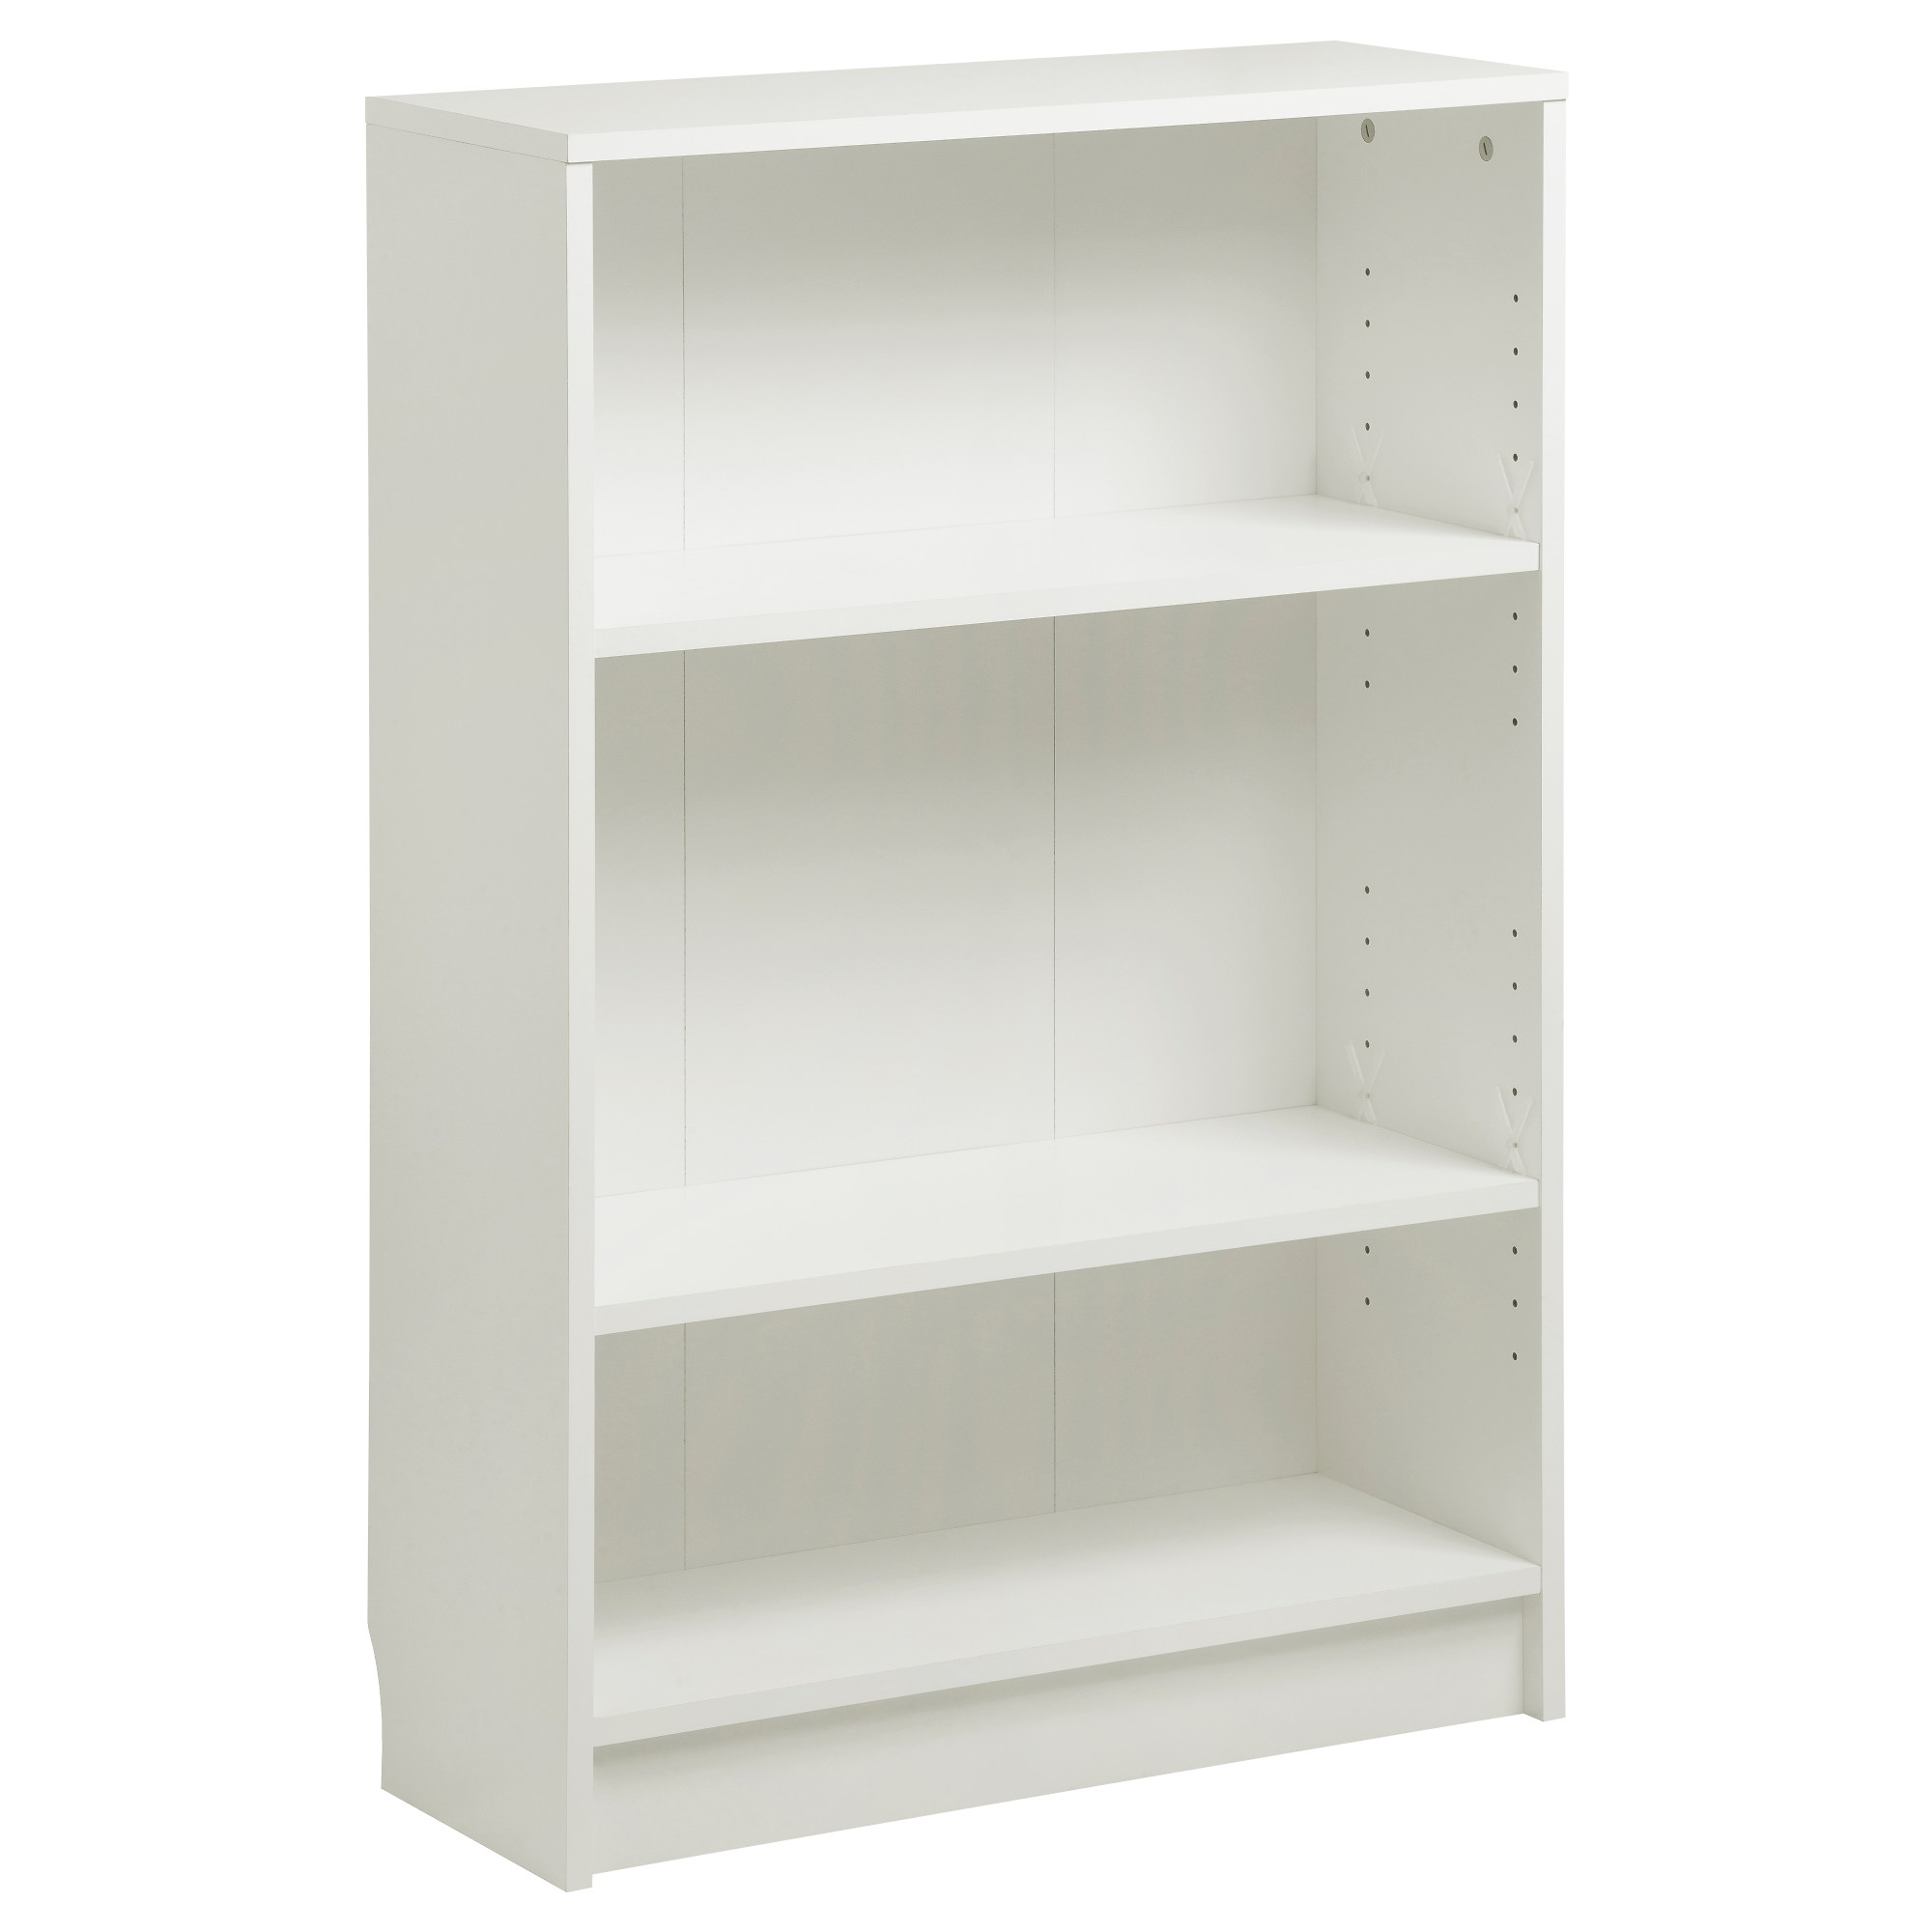 Avdala Bookcase White 65x99 Cm – Ikea In Well Liked Ikea White Bookcases (View 2 of 15)